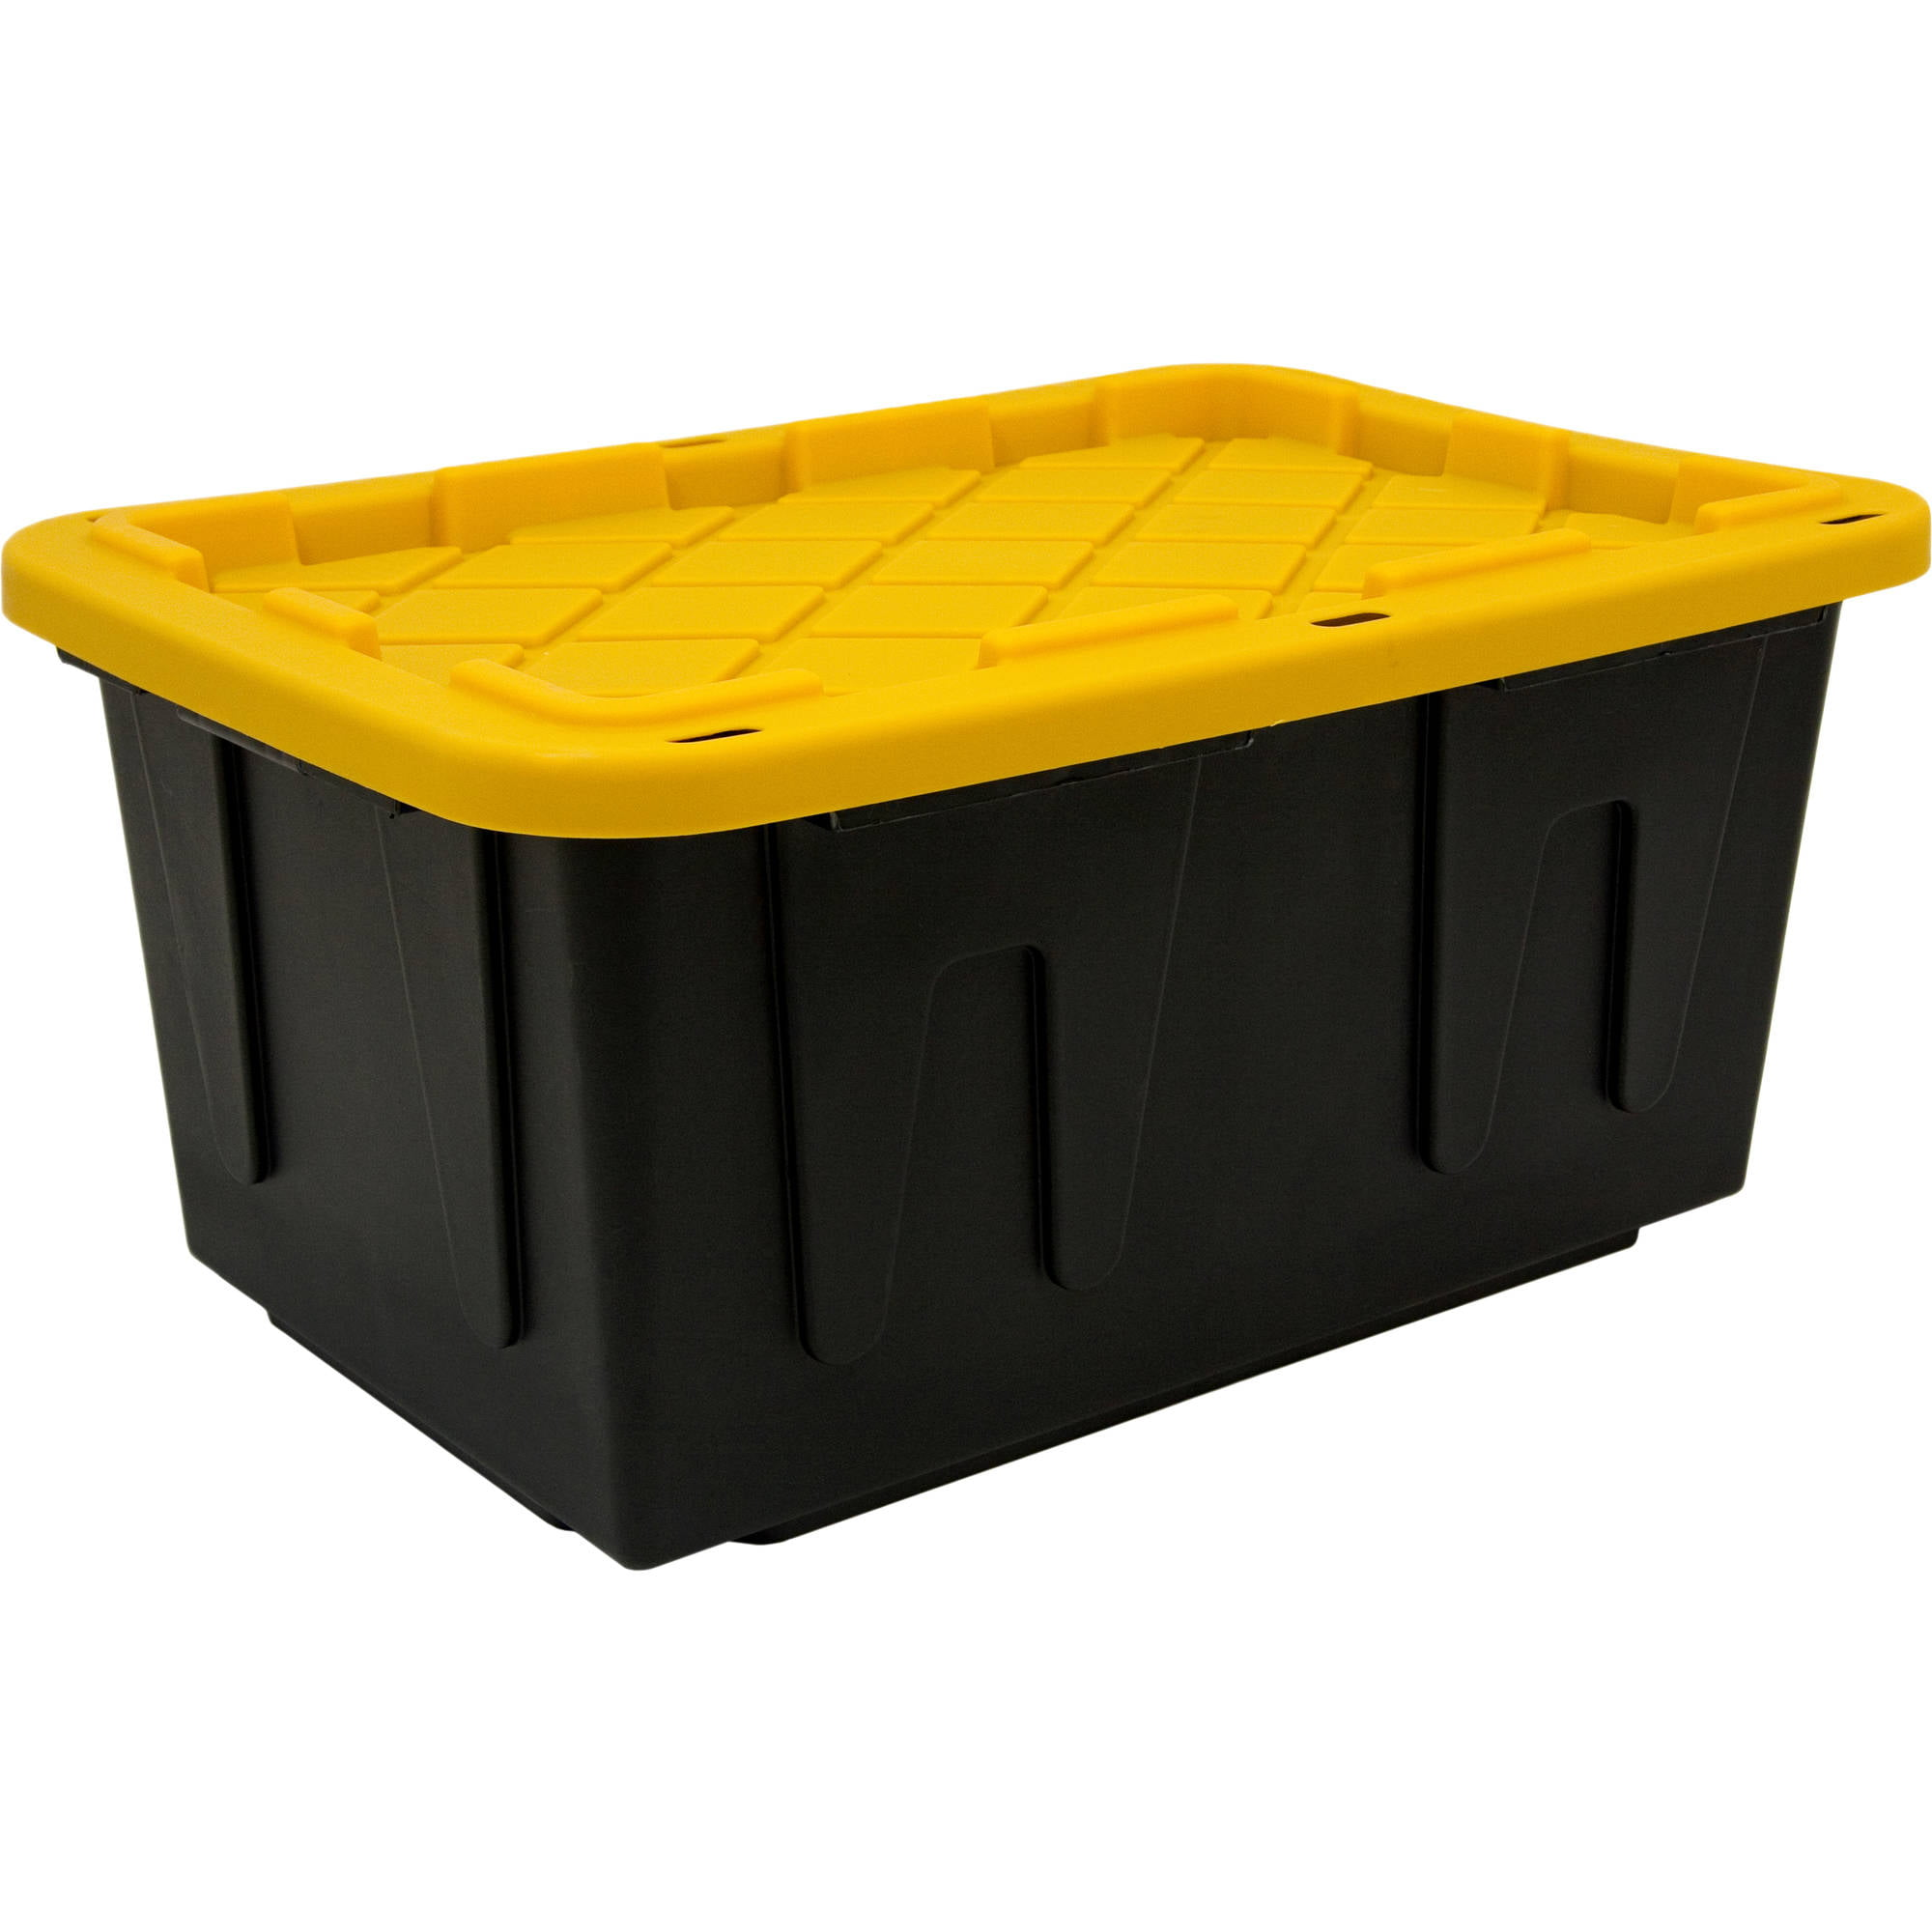 Plastic Storage Tote, Black/Yellow (Set Of 4)   Walmart.com